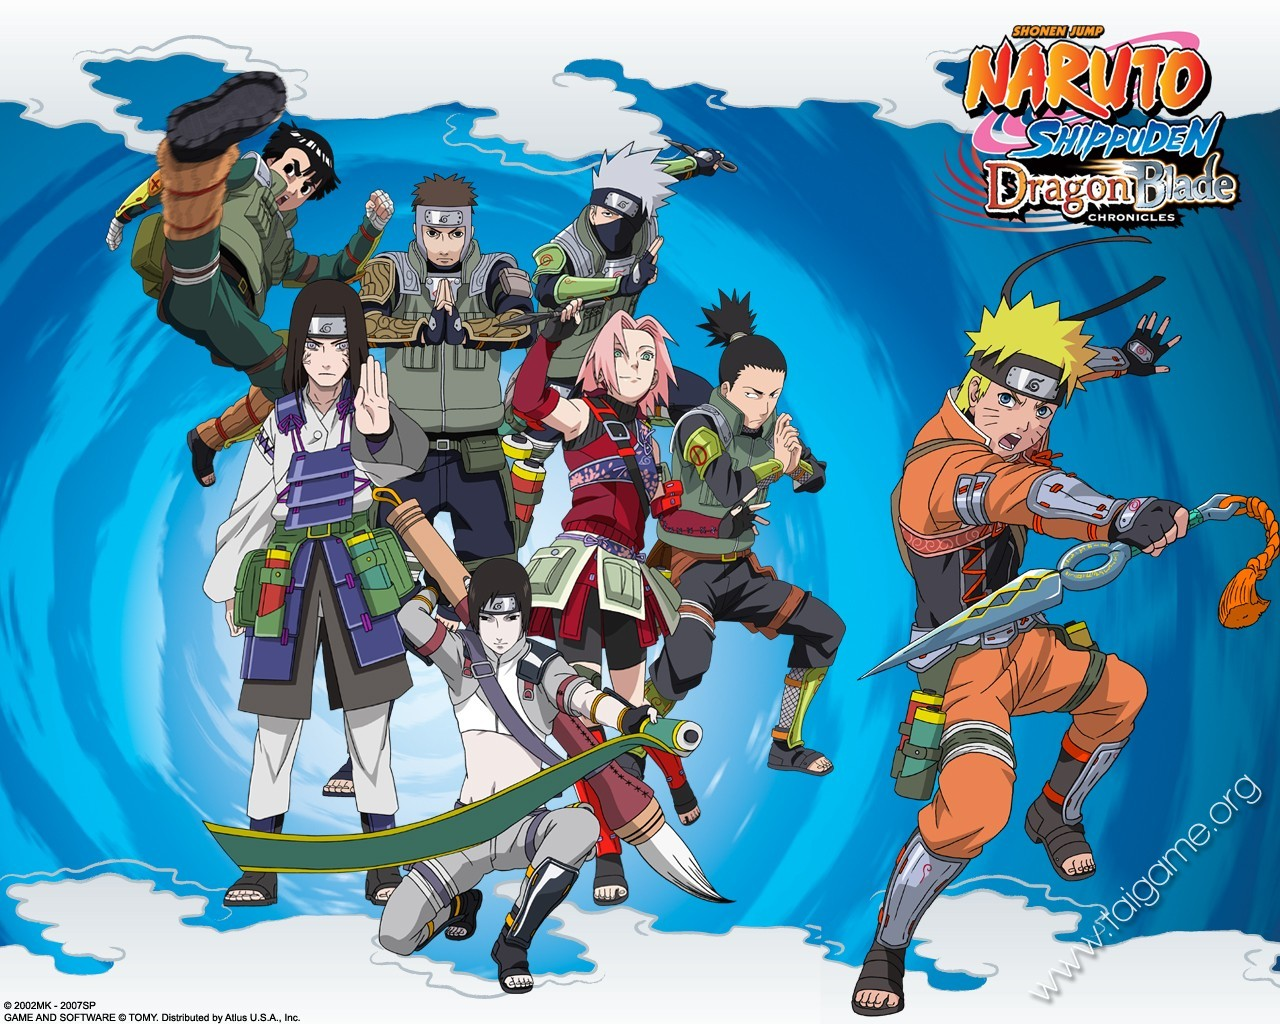 Naruto Shippuden: Dragon Blade Chronicles - Download Free